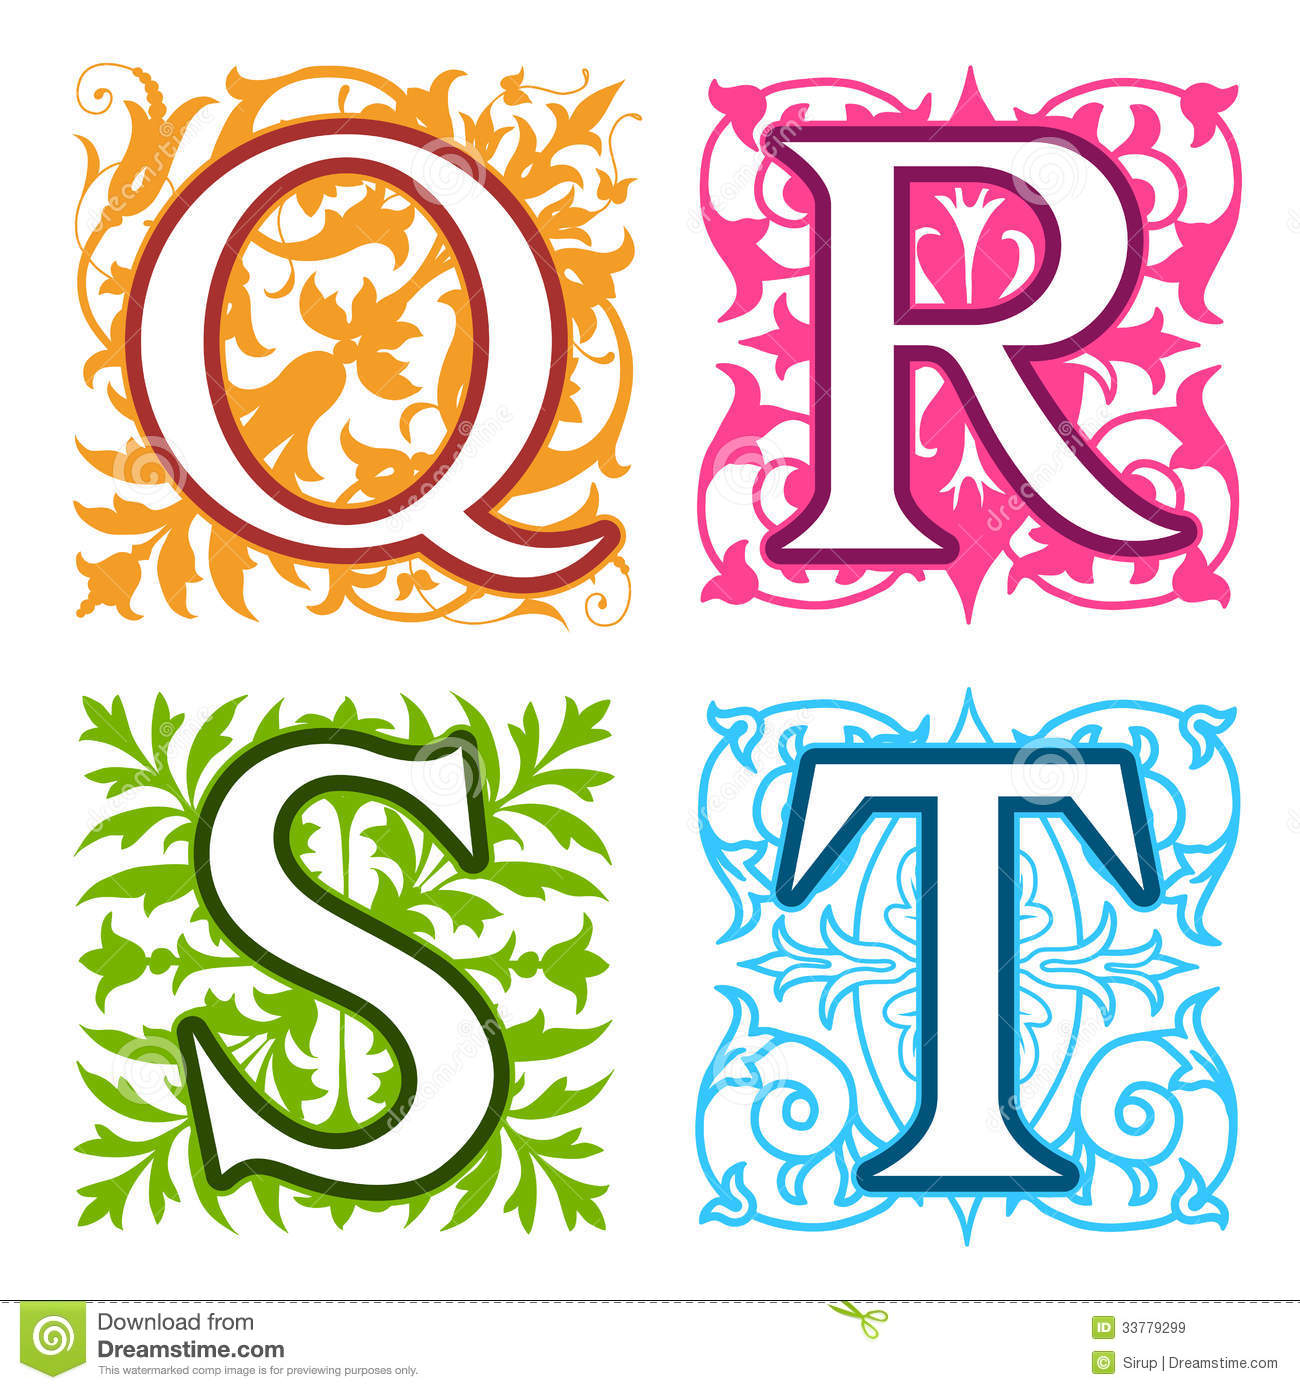 Q R S T Alphabet Letters Floral Elements Stock Vector